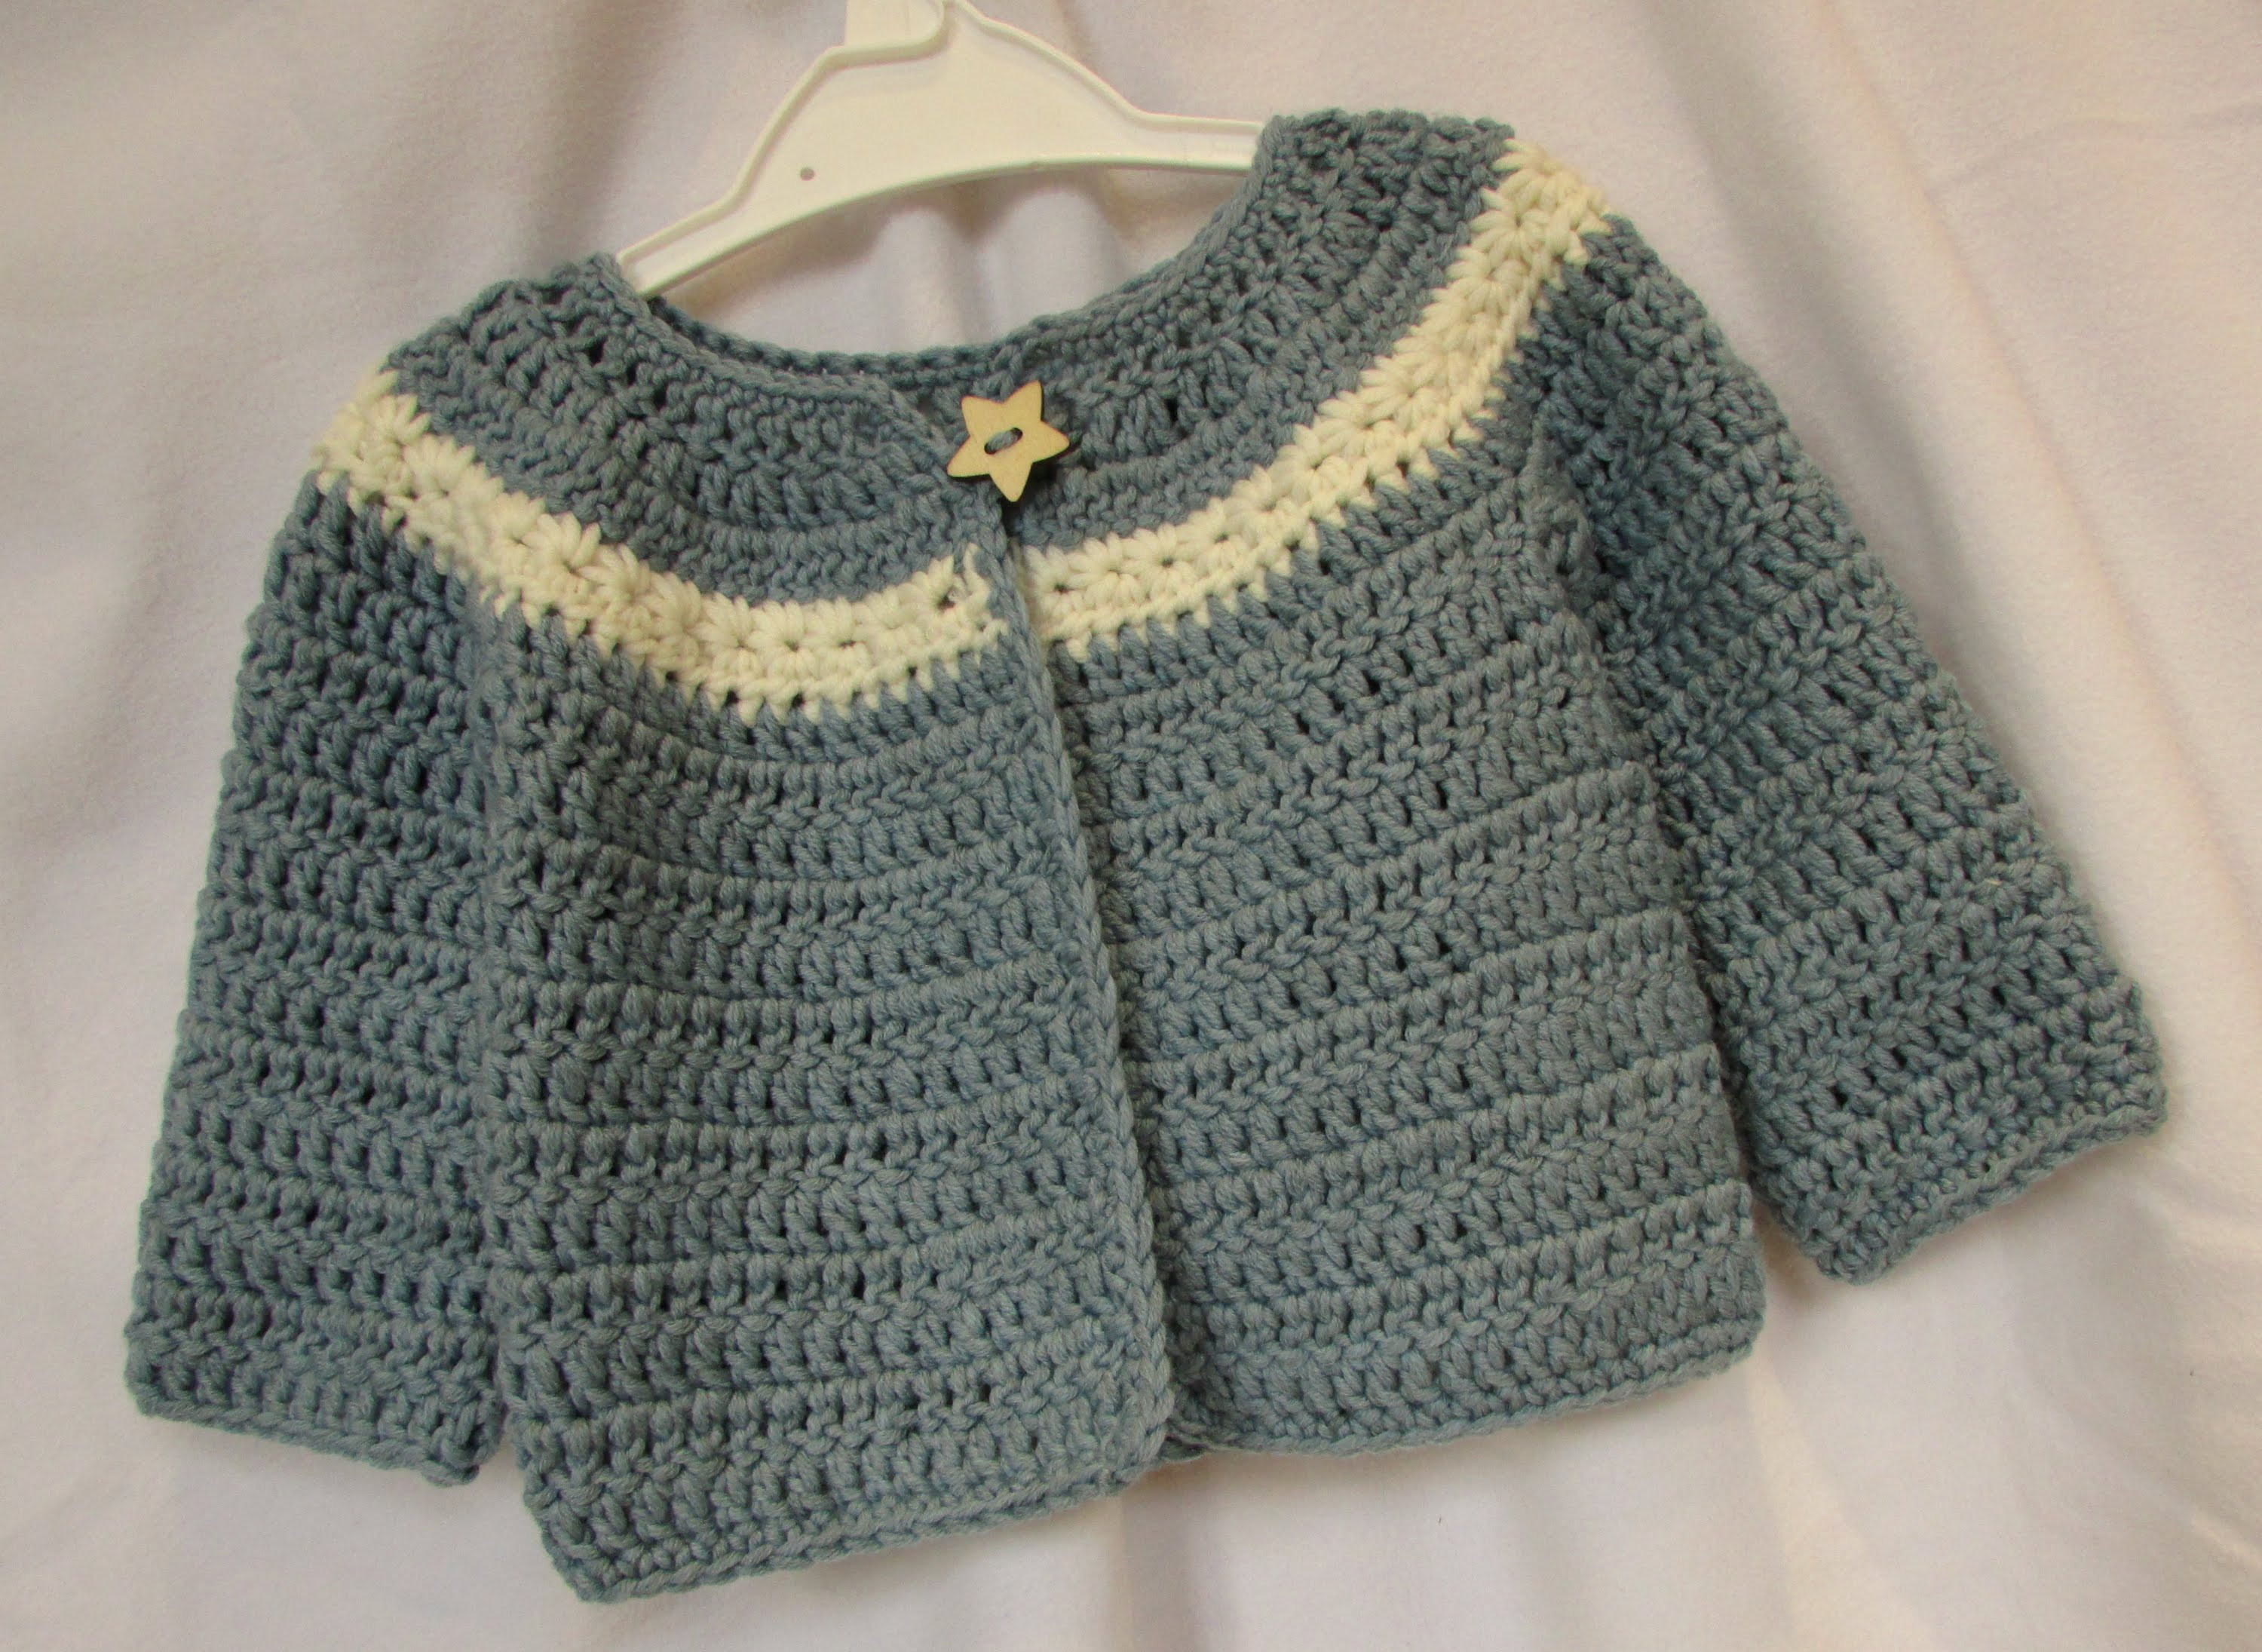 Crochet Baby Cardigan Awesome toddler Crochet Sweater Pattern Of Amazing 49 Pics Crochet Baby Cardigan